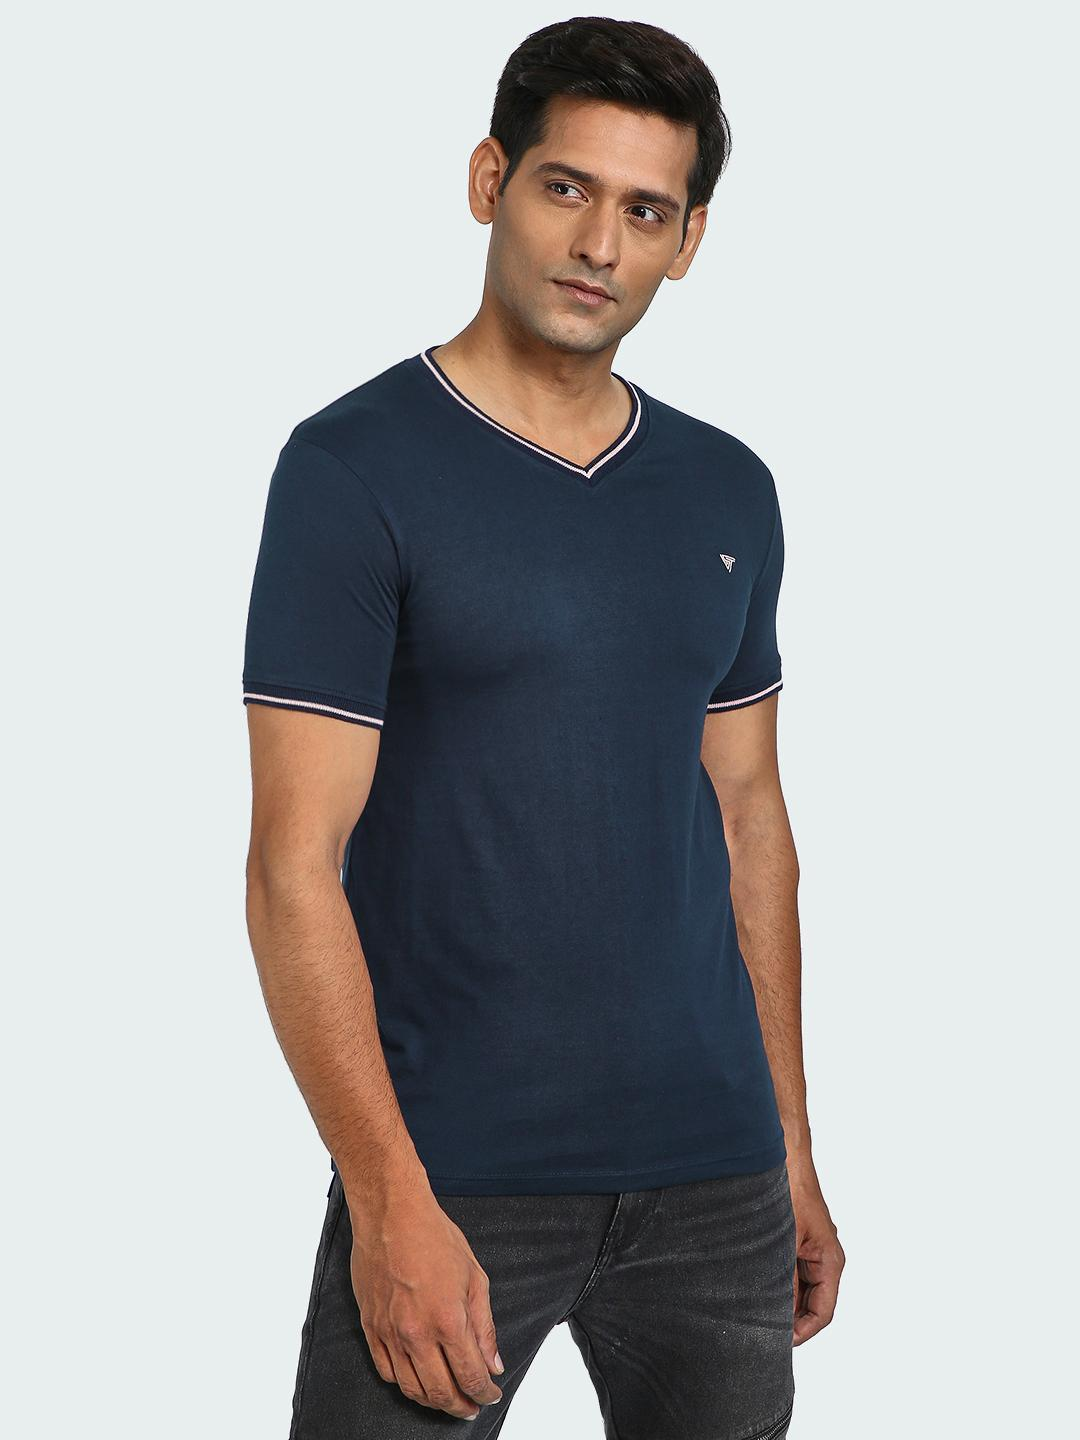 Blue Saint Navy Contrast Panel V Neck T-Shirt 1